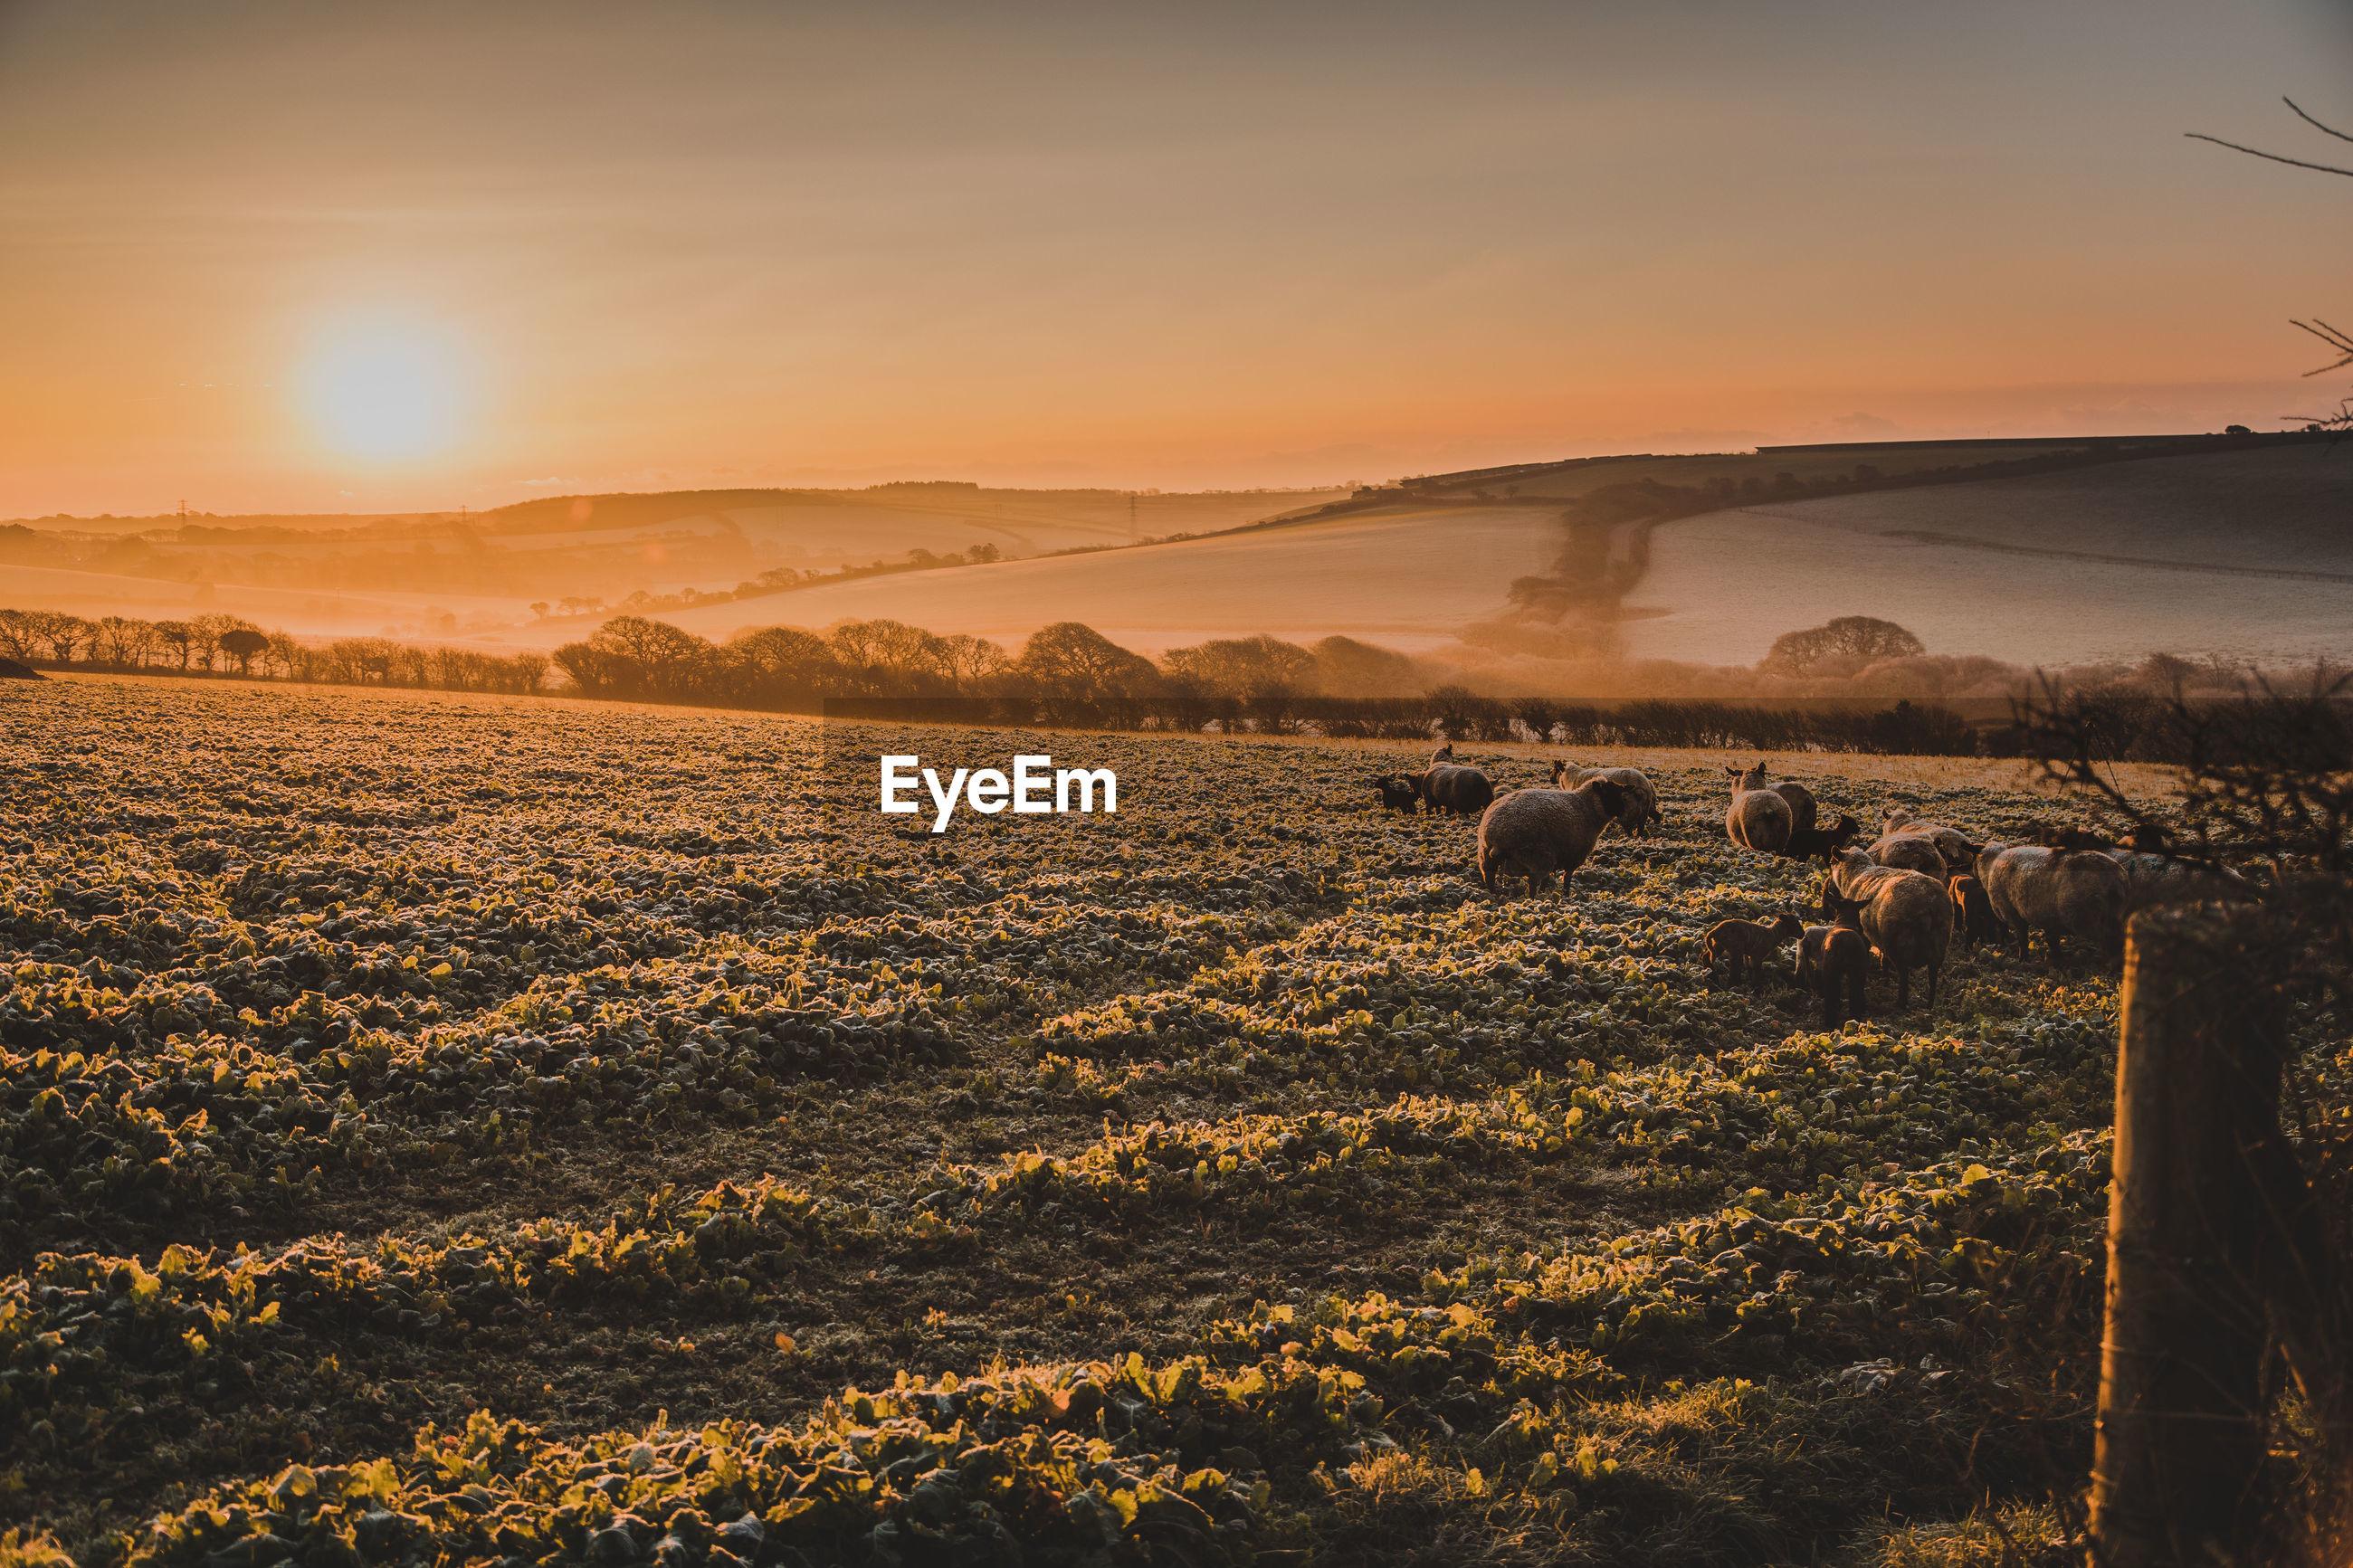 Sheep on landscape against sky during sunset